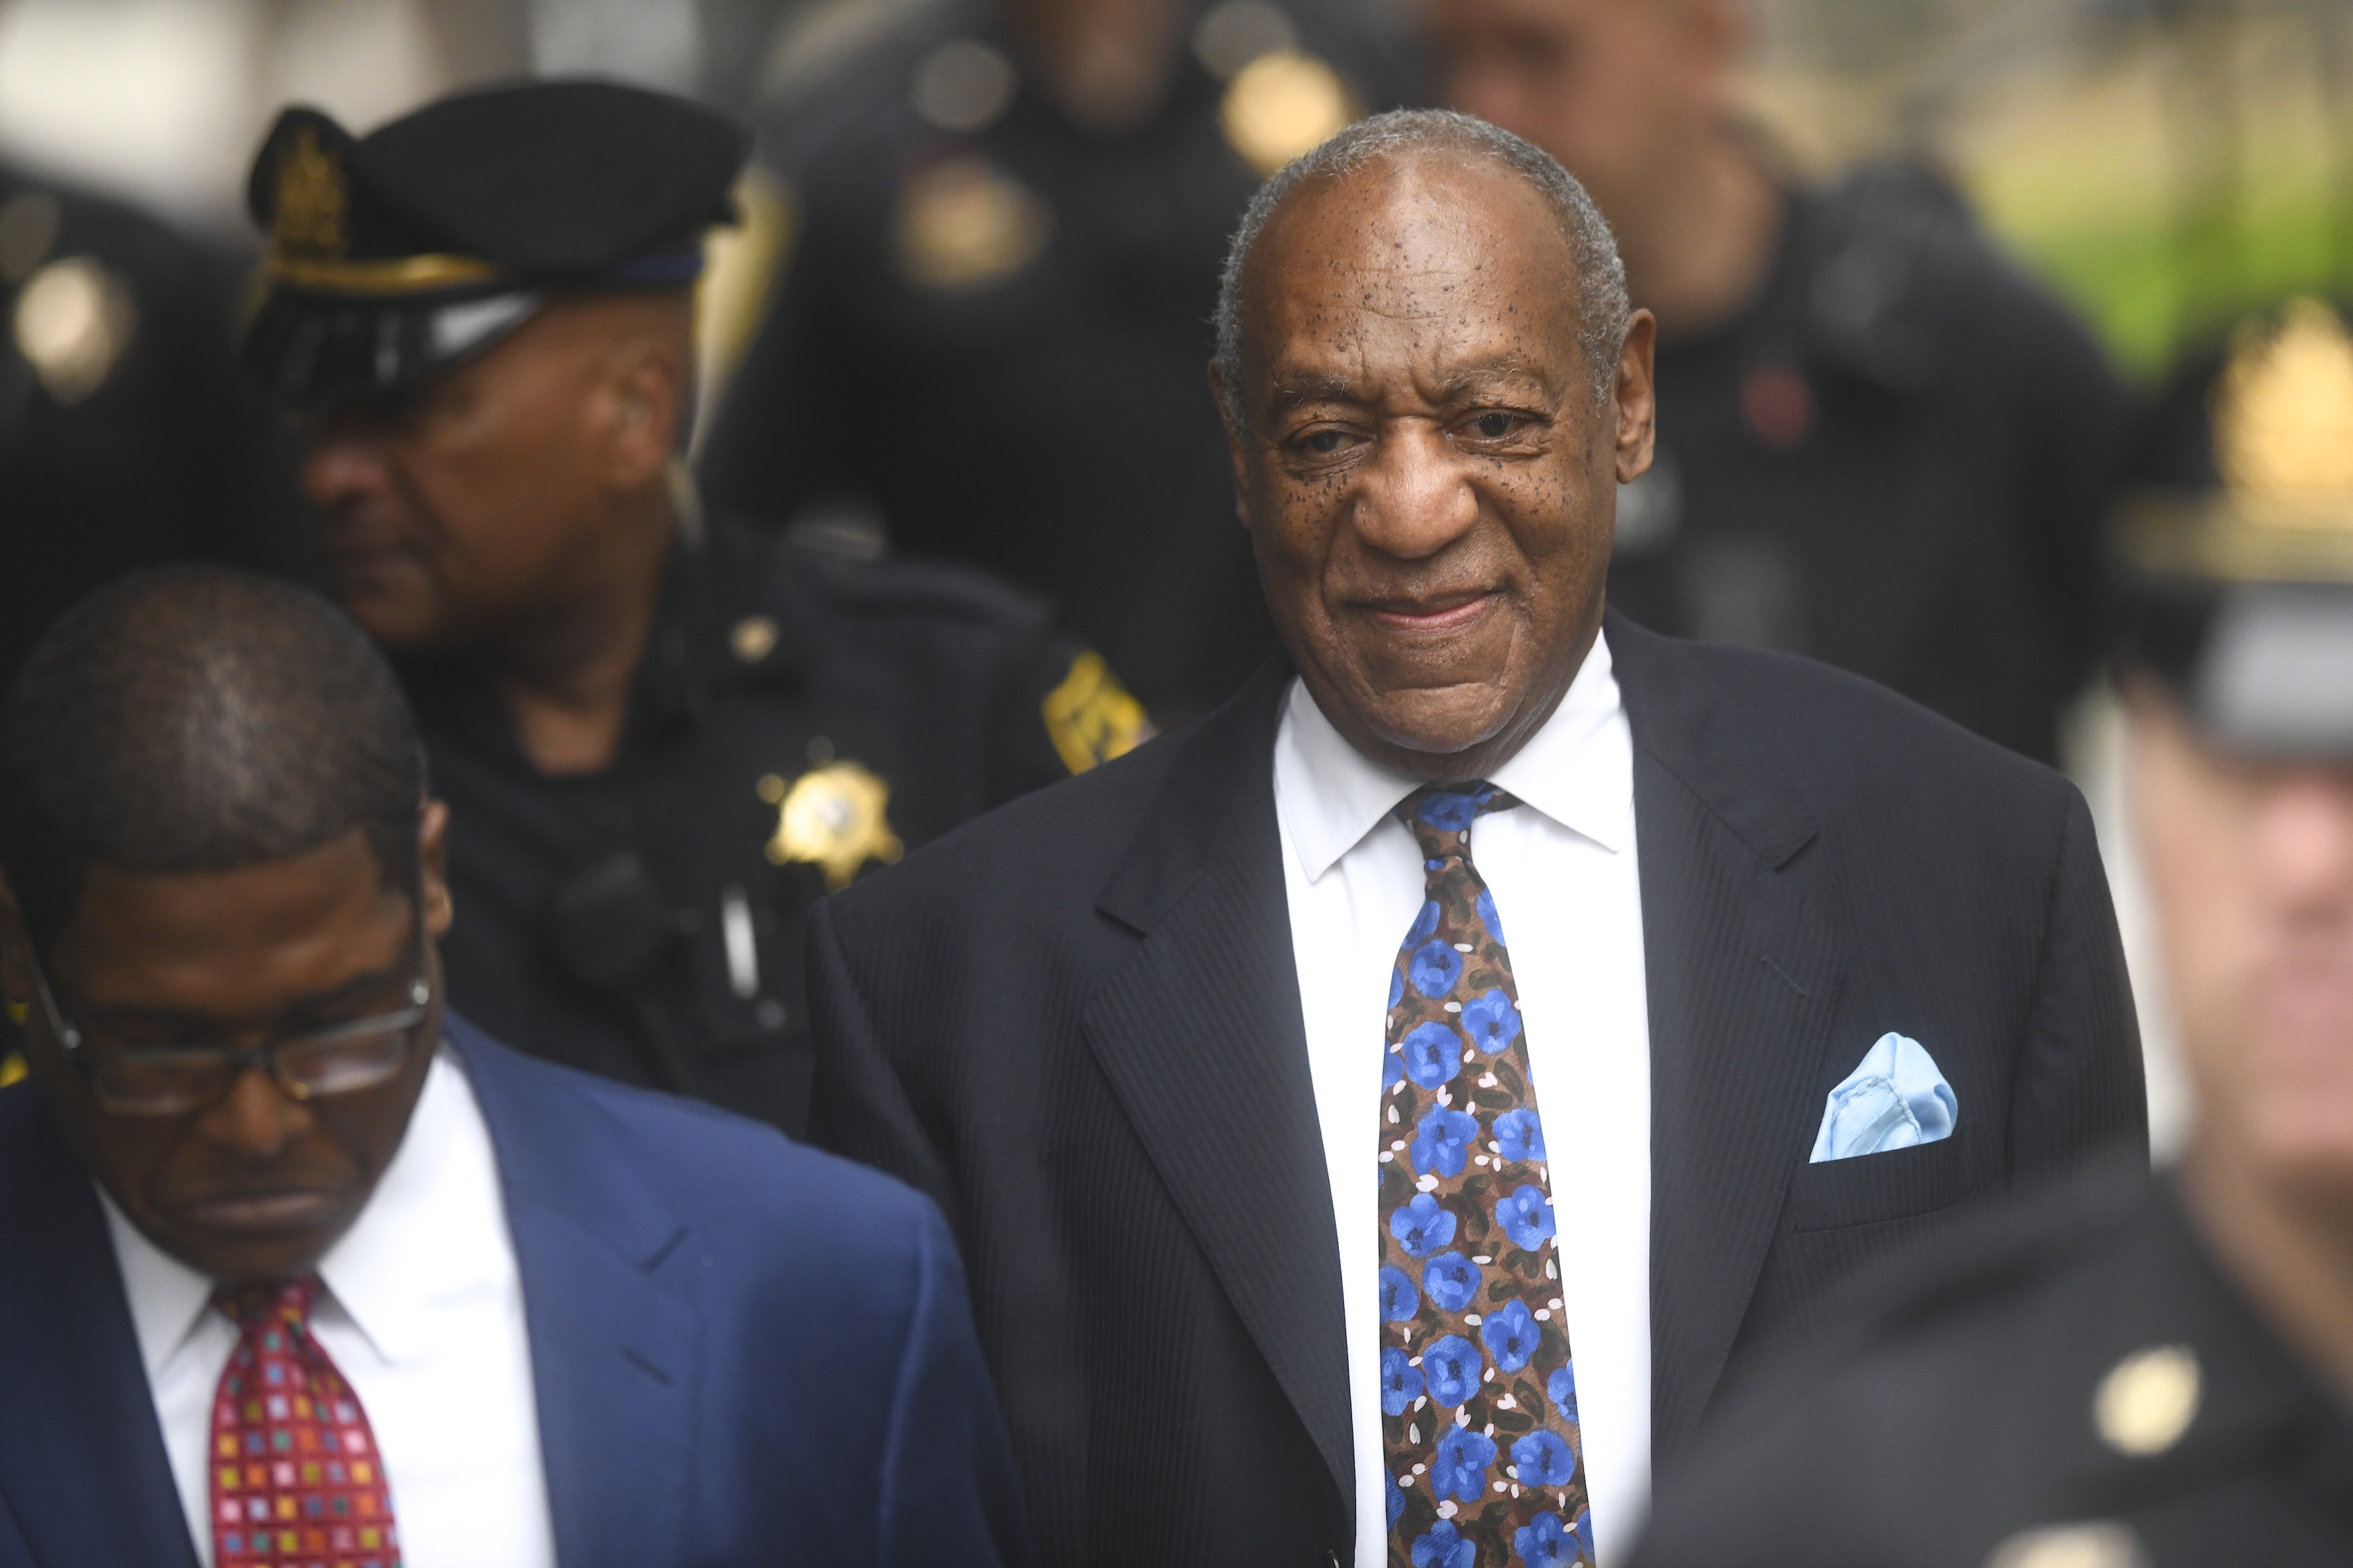 Bill Cosby arrives at the Montgomery County Courthouse on the first day of sentencing in his sexual assault trial on September 24, 2018 in Norristown, Pennsylvania. In April, Cosby was found guilty on three counts of aggravated indecent assault for drugging and sexually assaulting Andrea Constand at his suburban Philadelphia home in 2004. 60 women have accused the 80 year old entertainer of sexual assault.